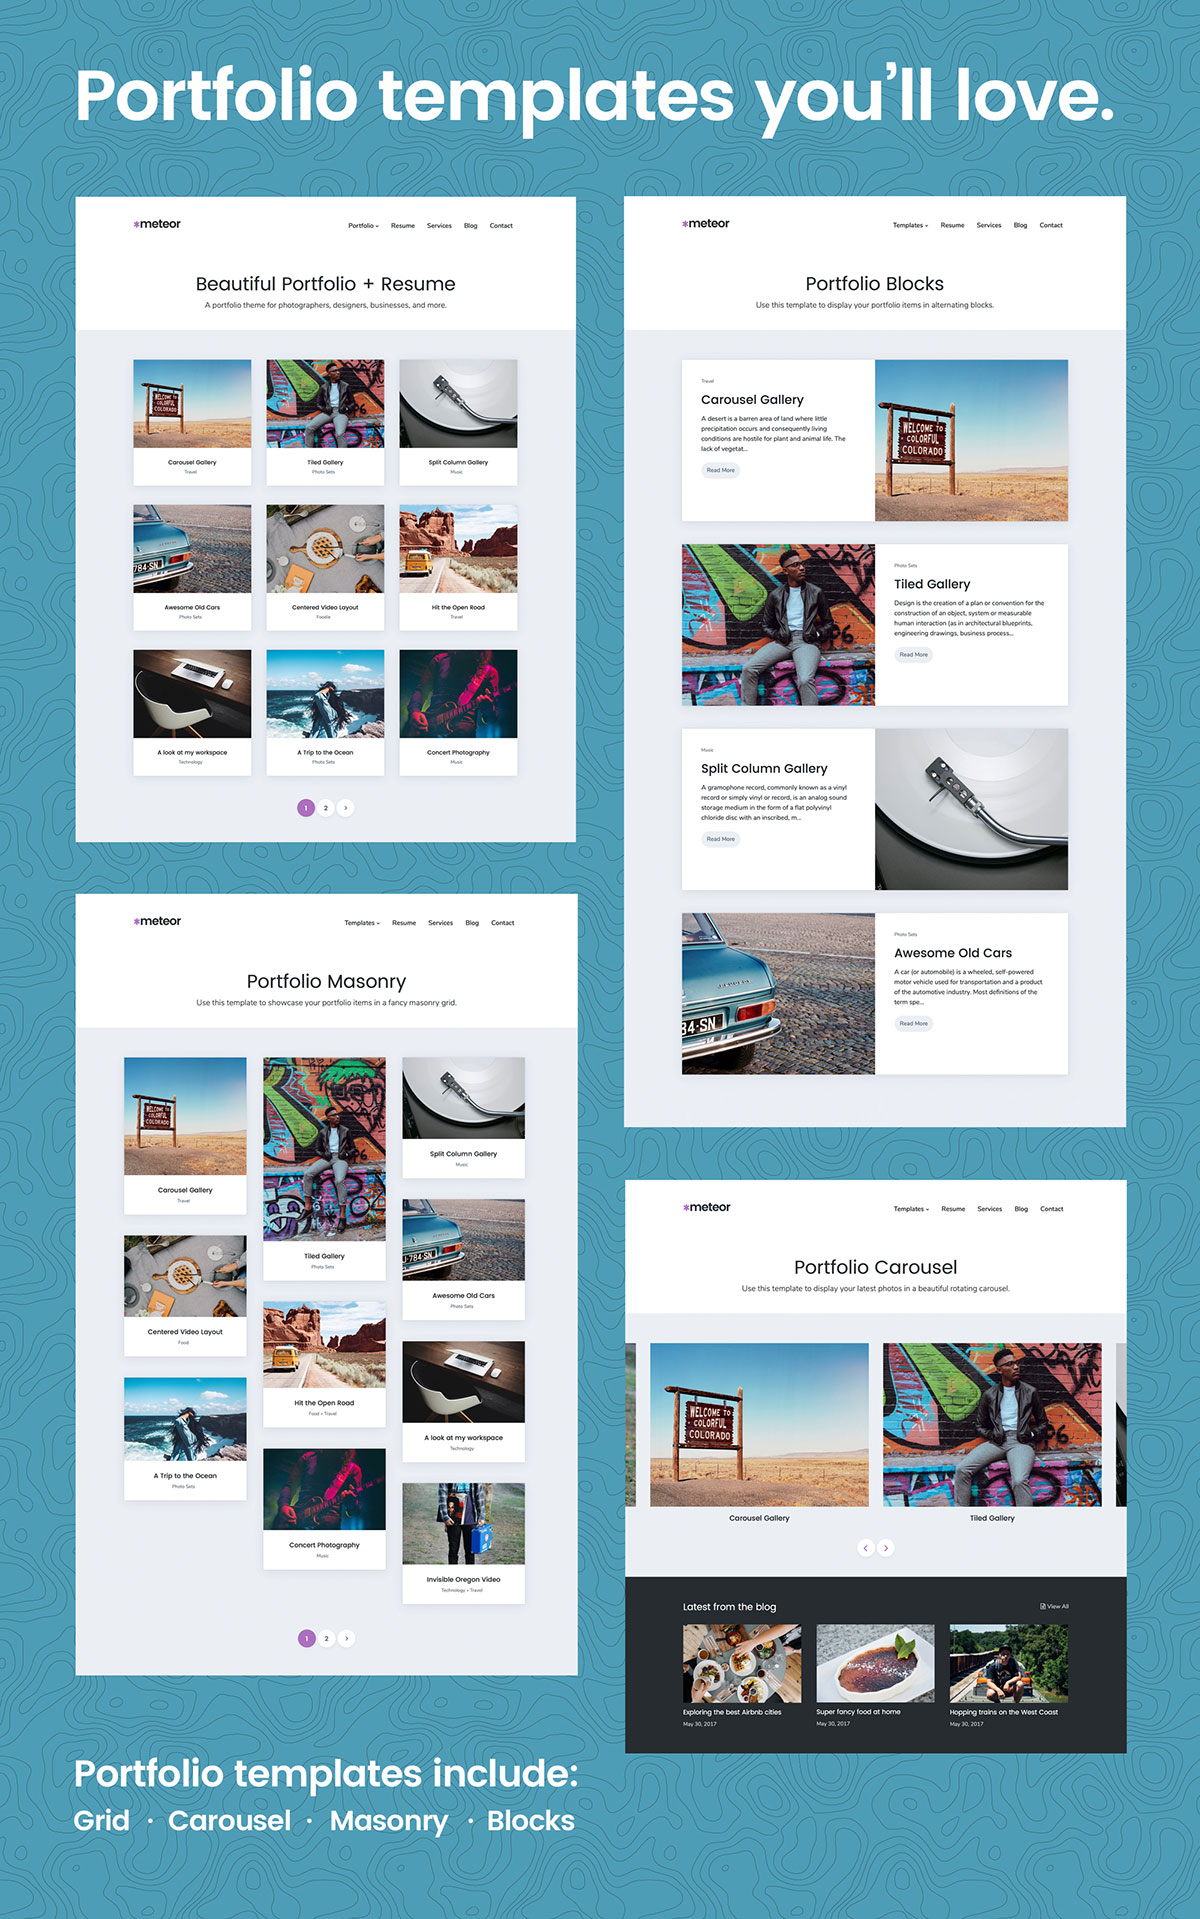 Meteor WordPress Theme Portfolio Templates